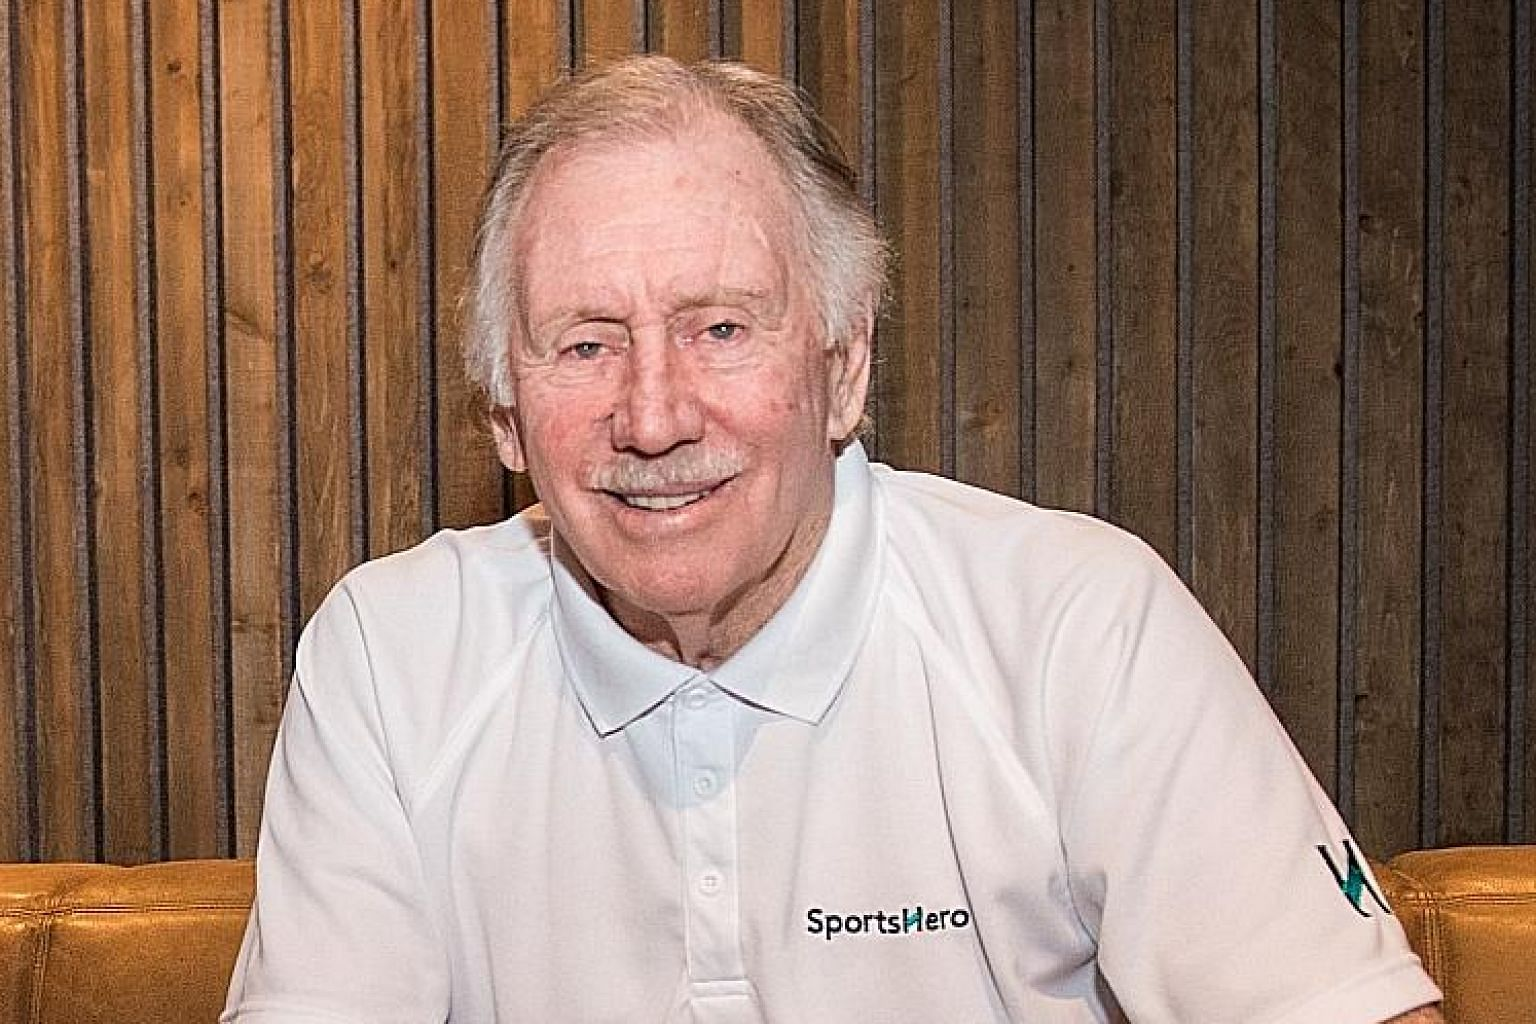 Cricket legend Ian Chappell has little sympathy for the Australian trio involved in ball tampering during their Test against South Africa last month.